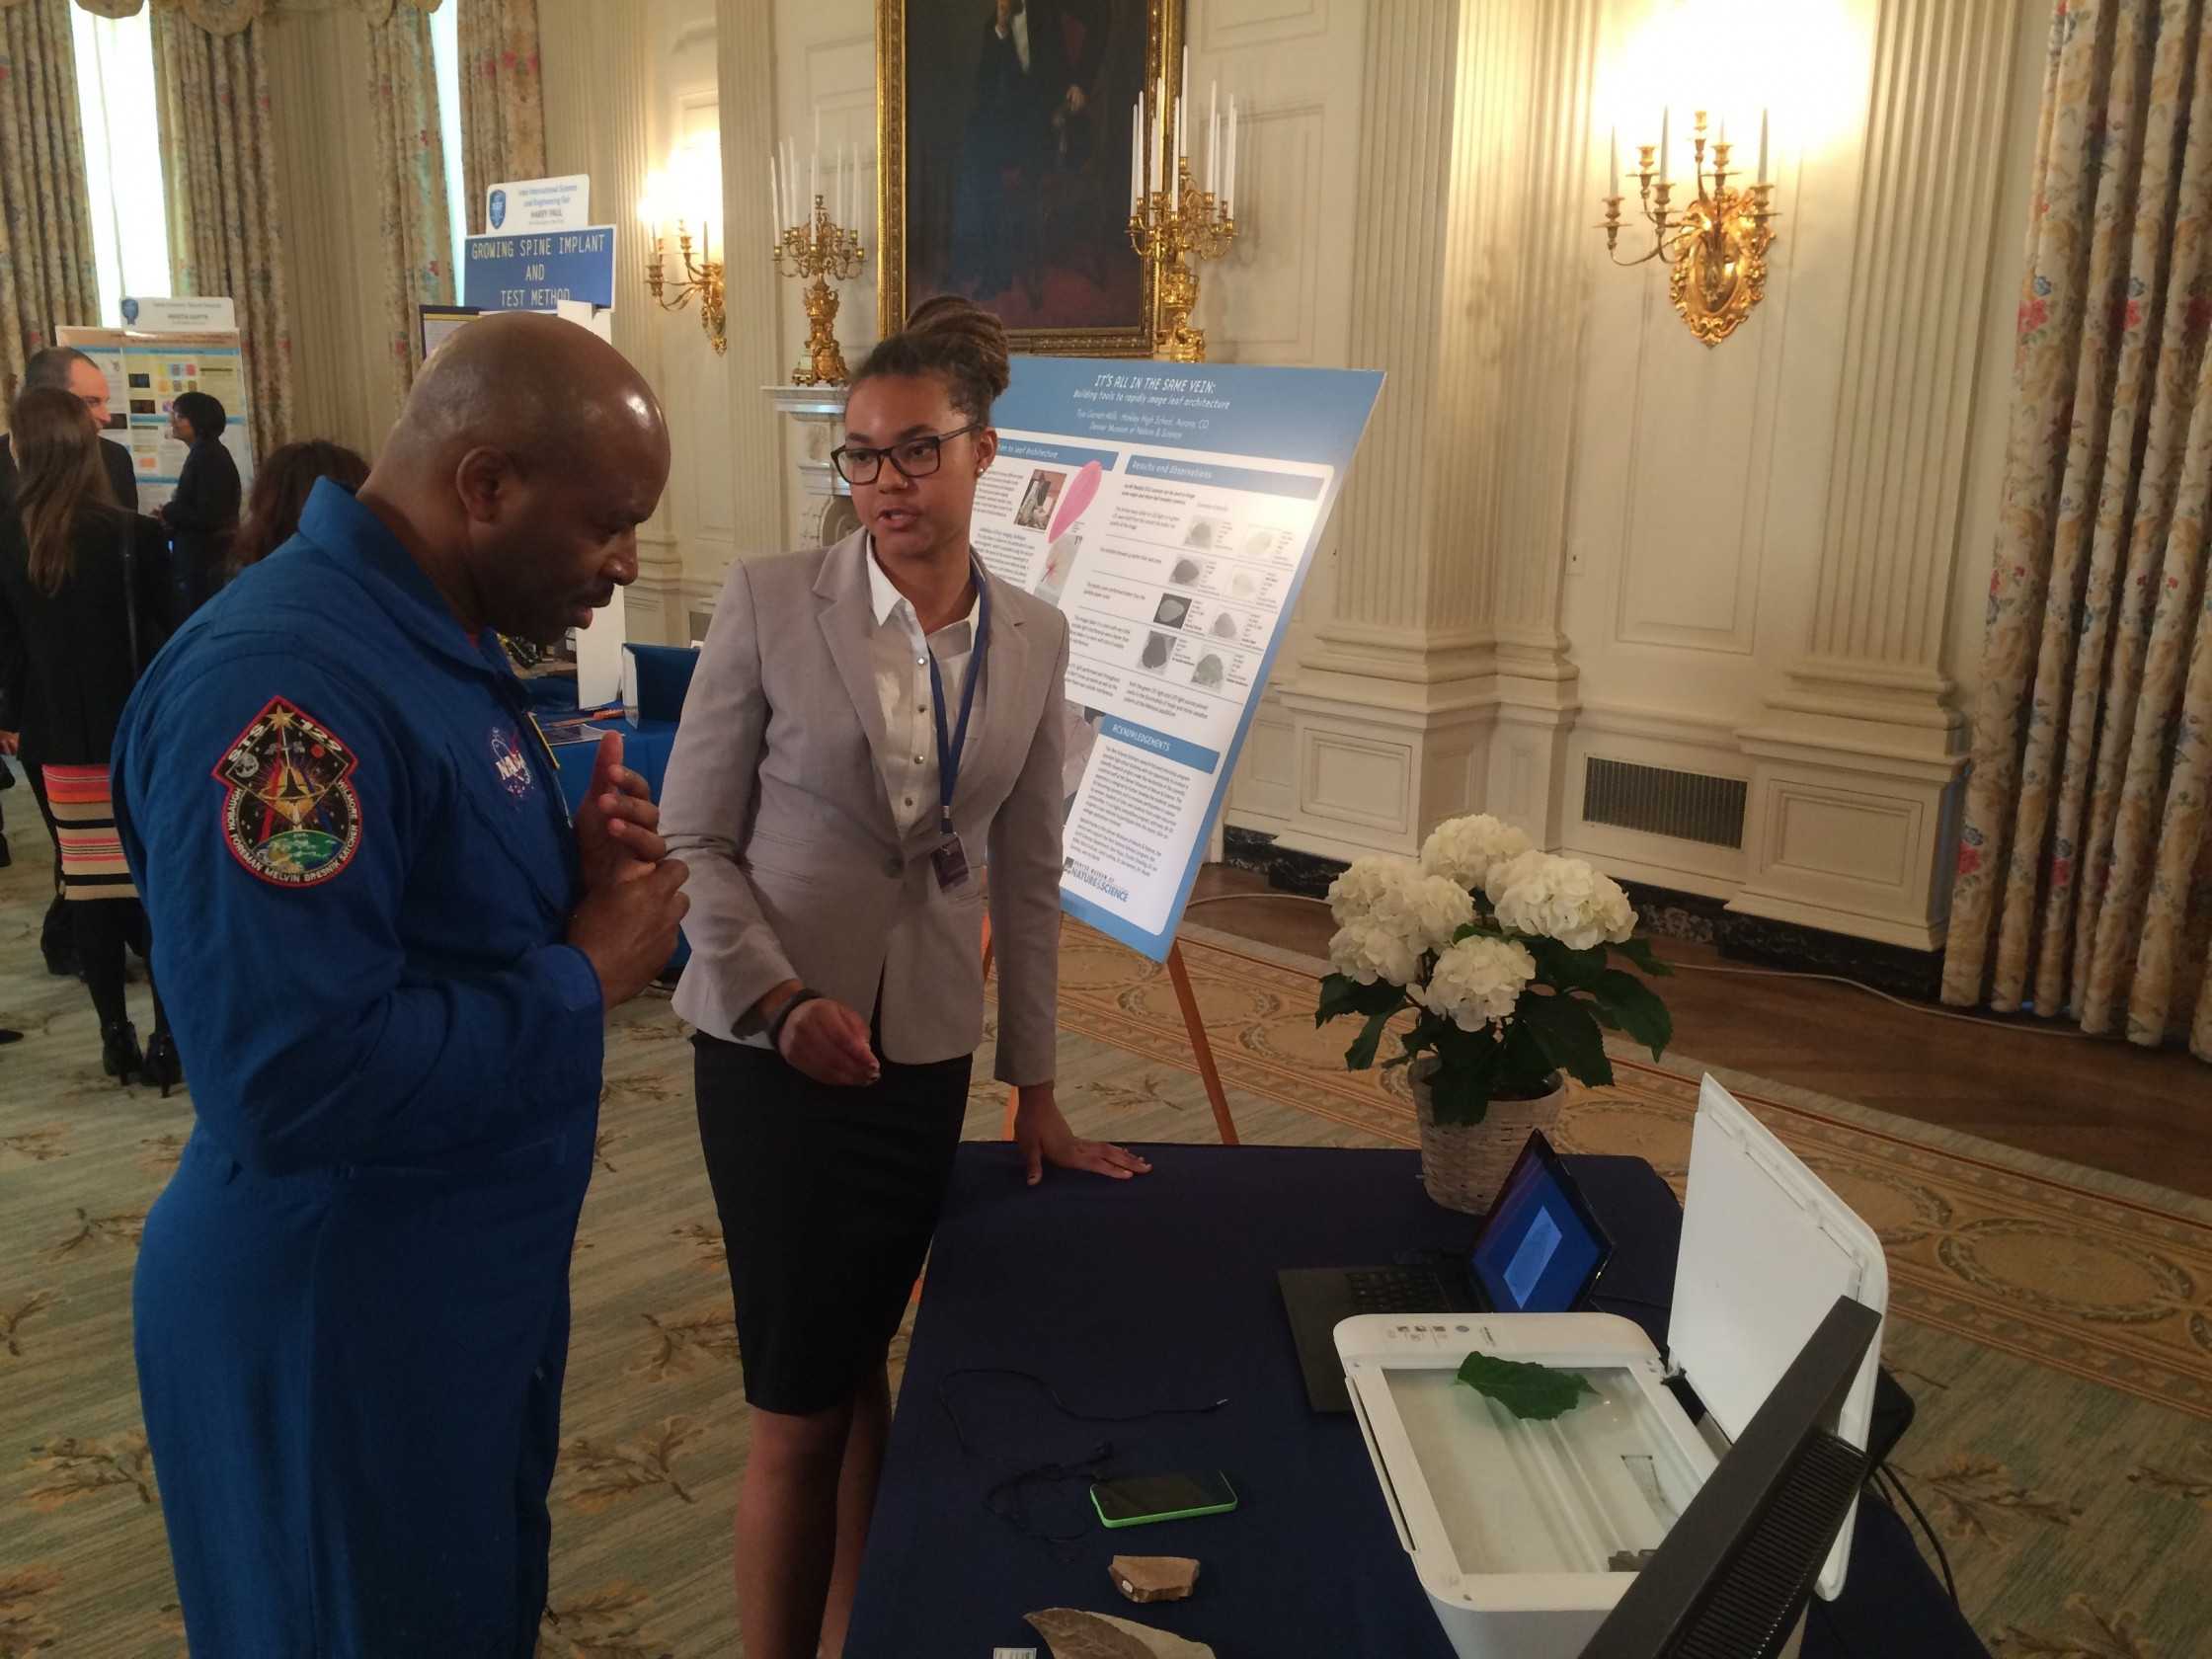 Citizen Science at the 2015 White House Science Fair